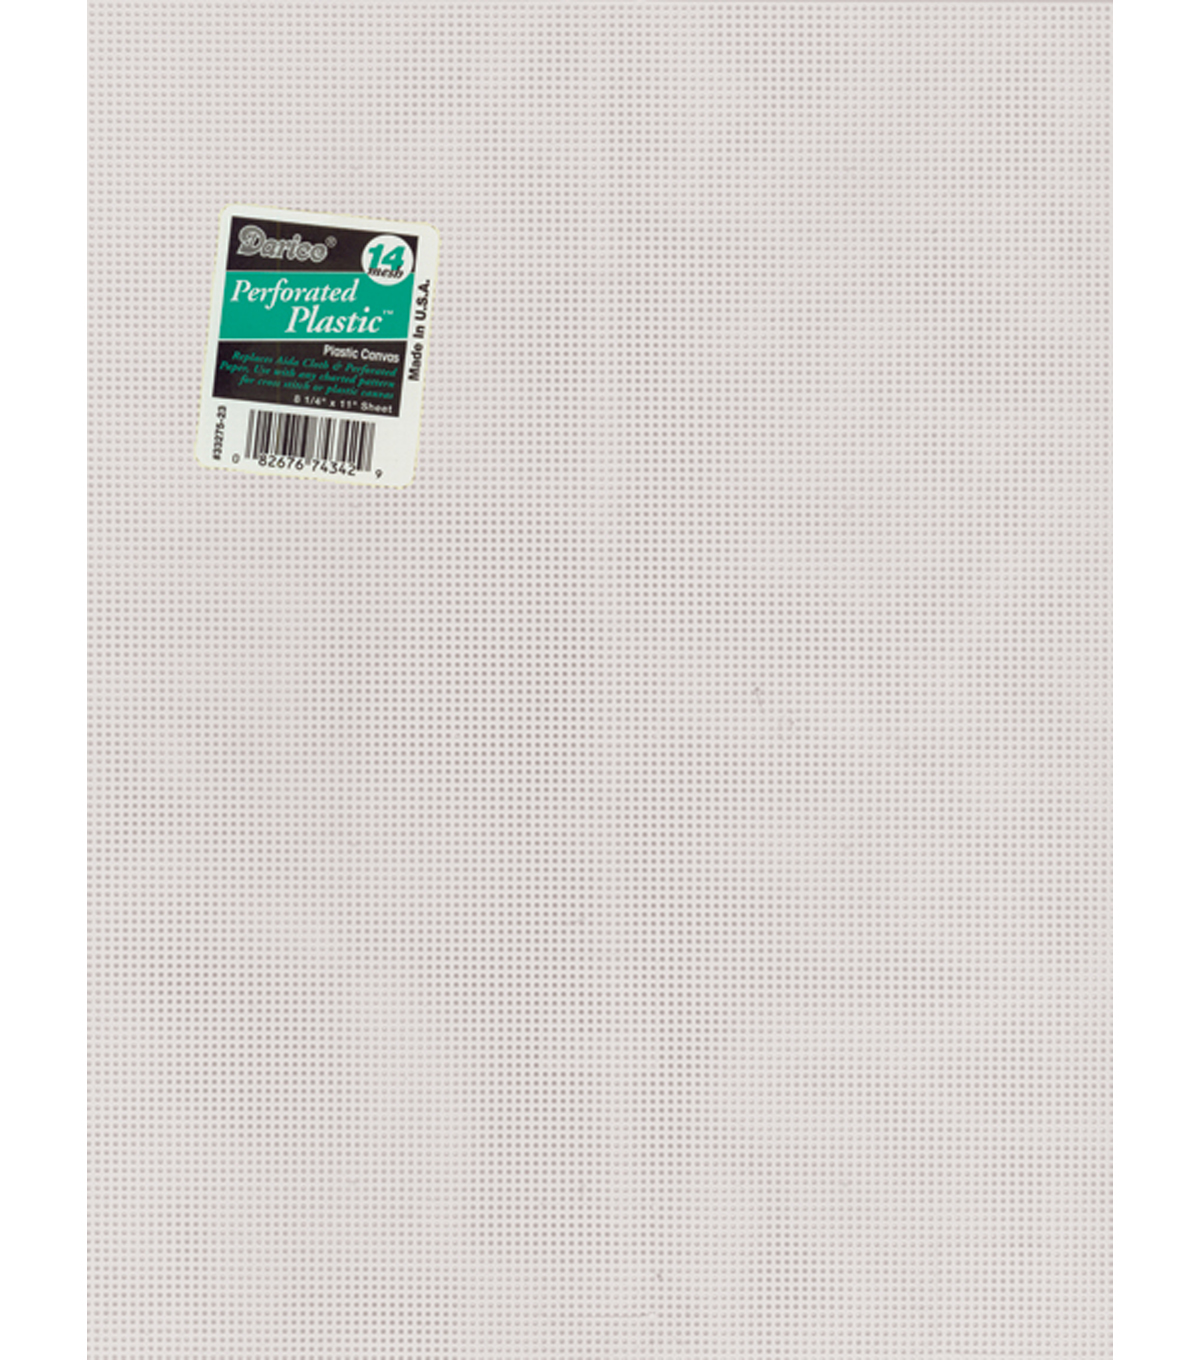 "Perforated Plastic Canvas 14 Count 8.5""X11""-Clear"